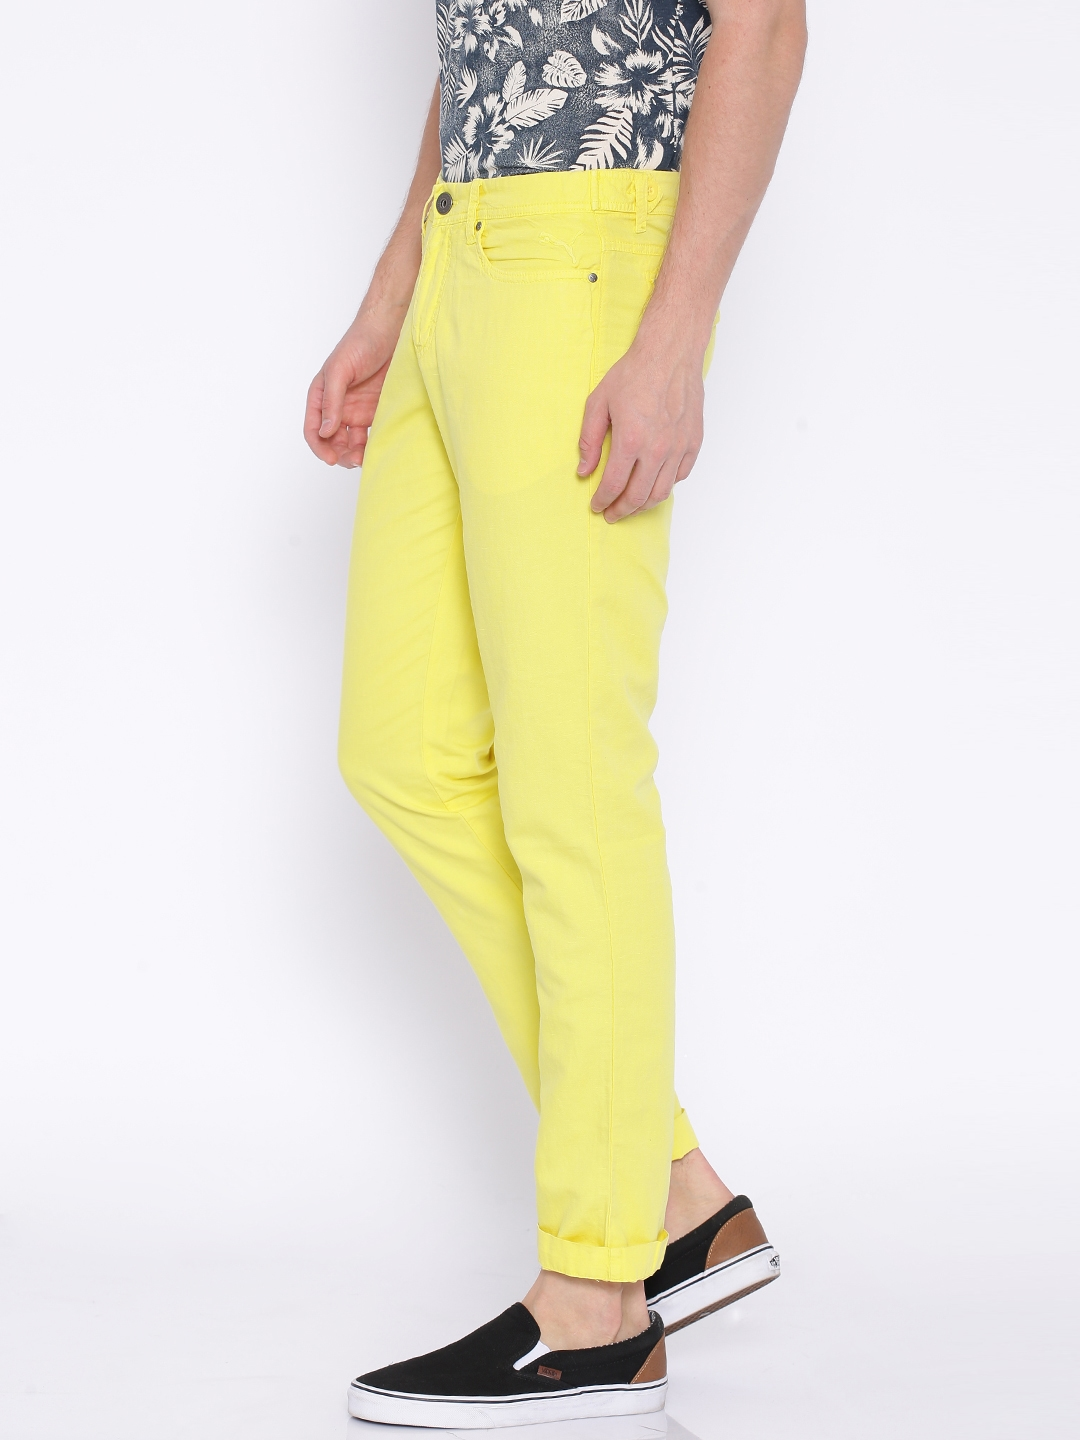 8bfcf31c3701 Buy PUMA Yellow Garment Dyed Casual Trousers - Trousers for Men ...